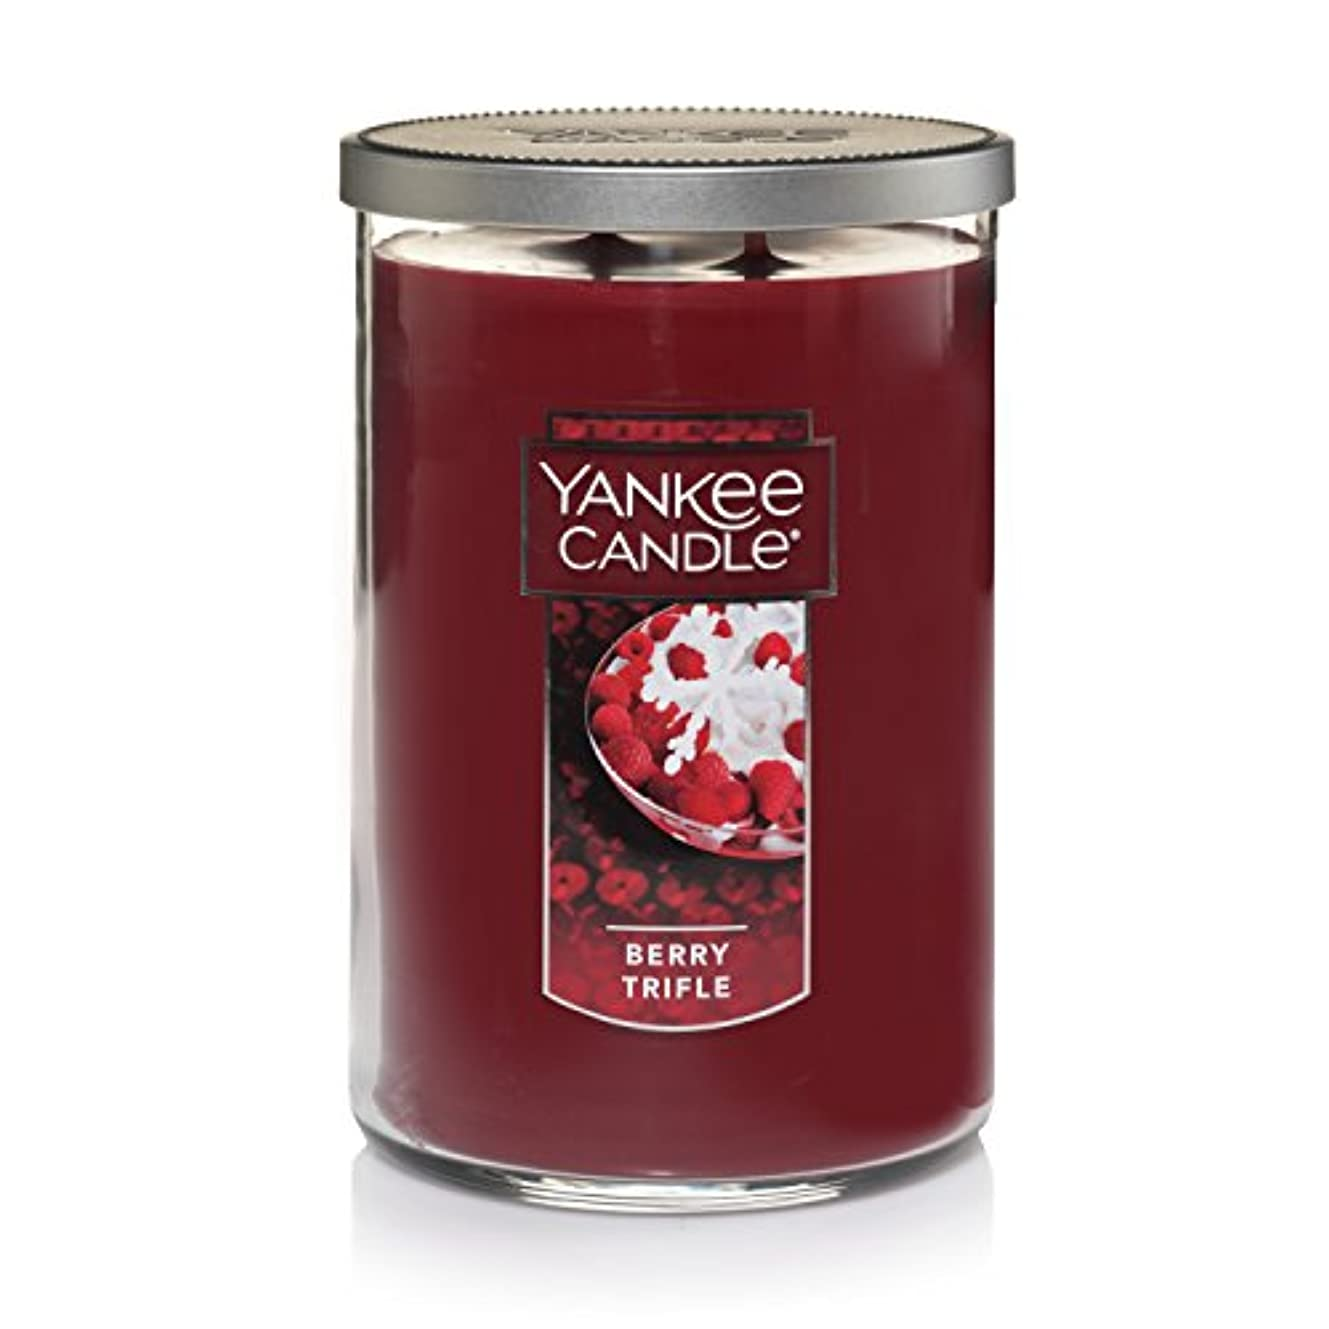 Yankee Candle Large Jar Candle Large 2-Wick Tumbler Candle レッド 1342528